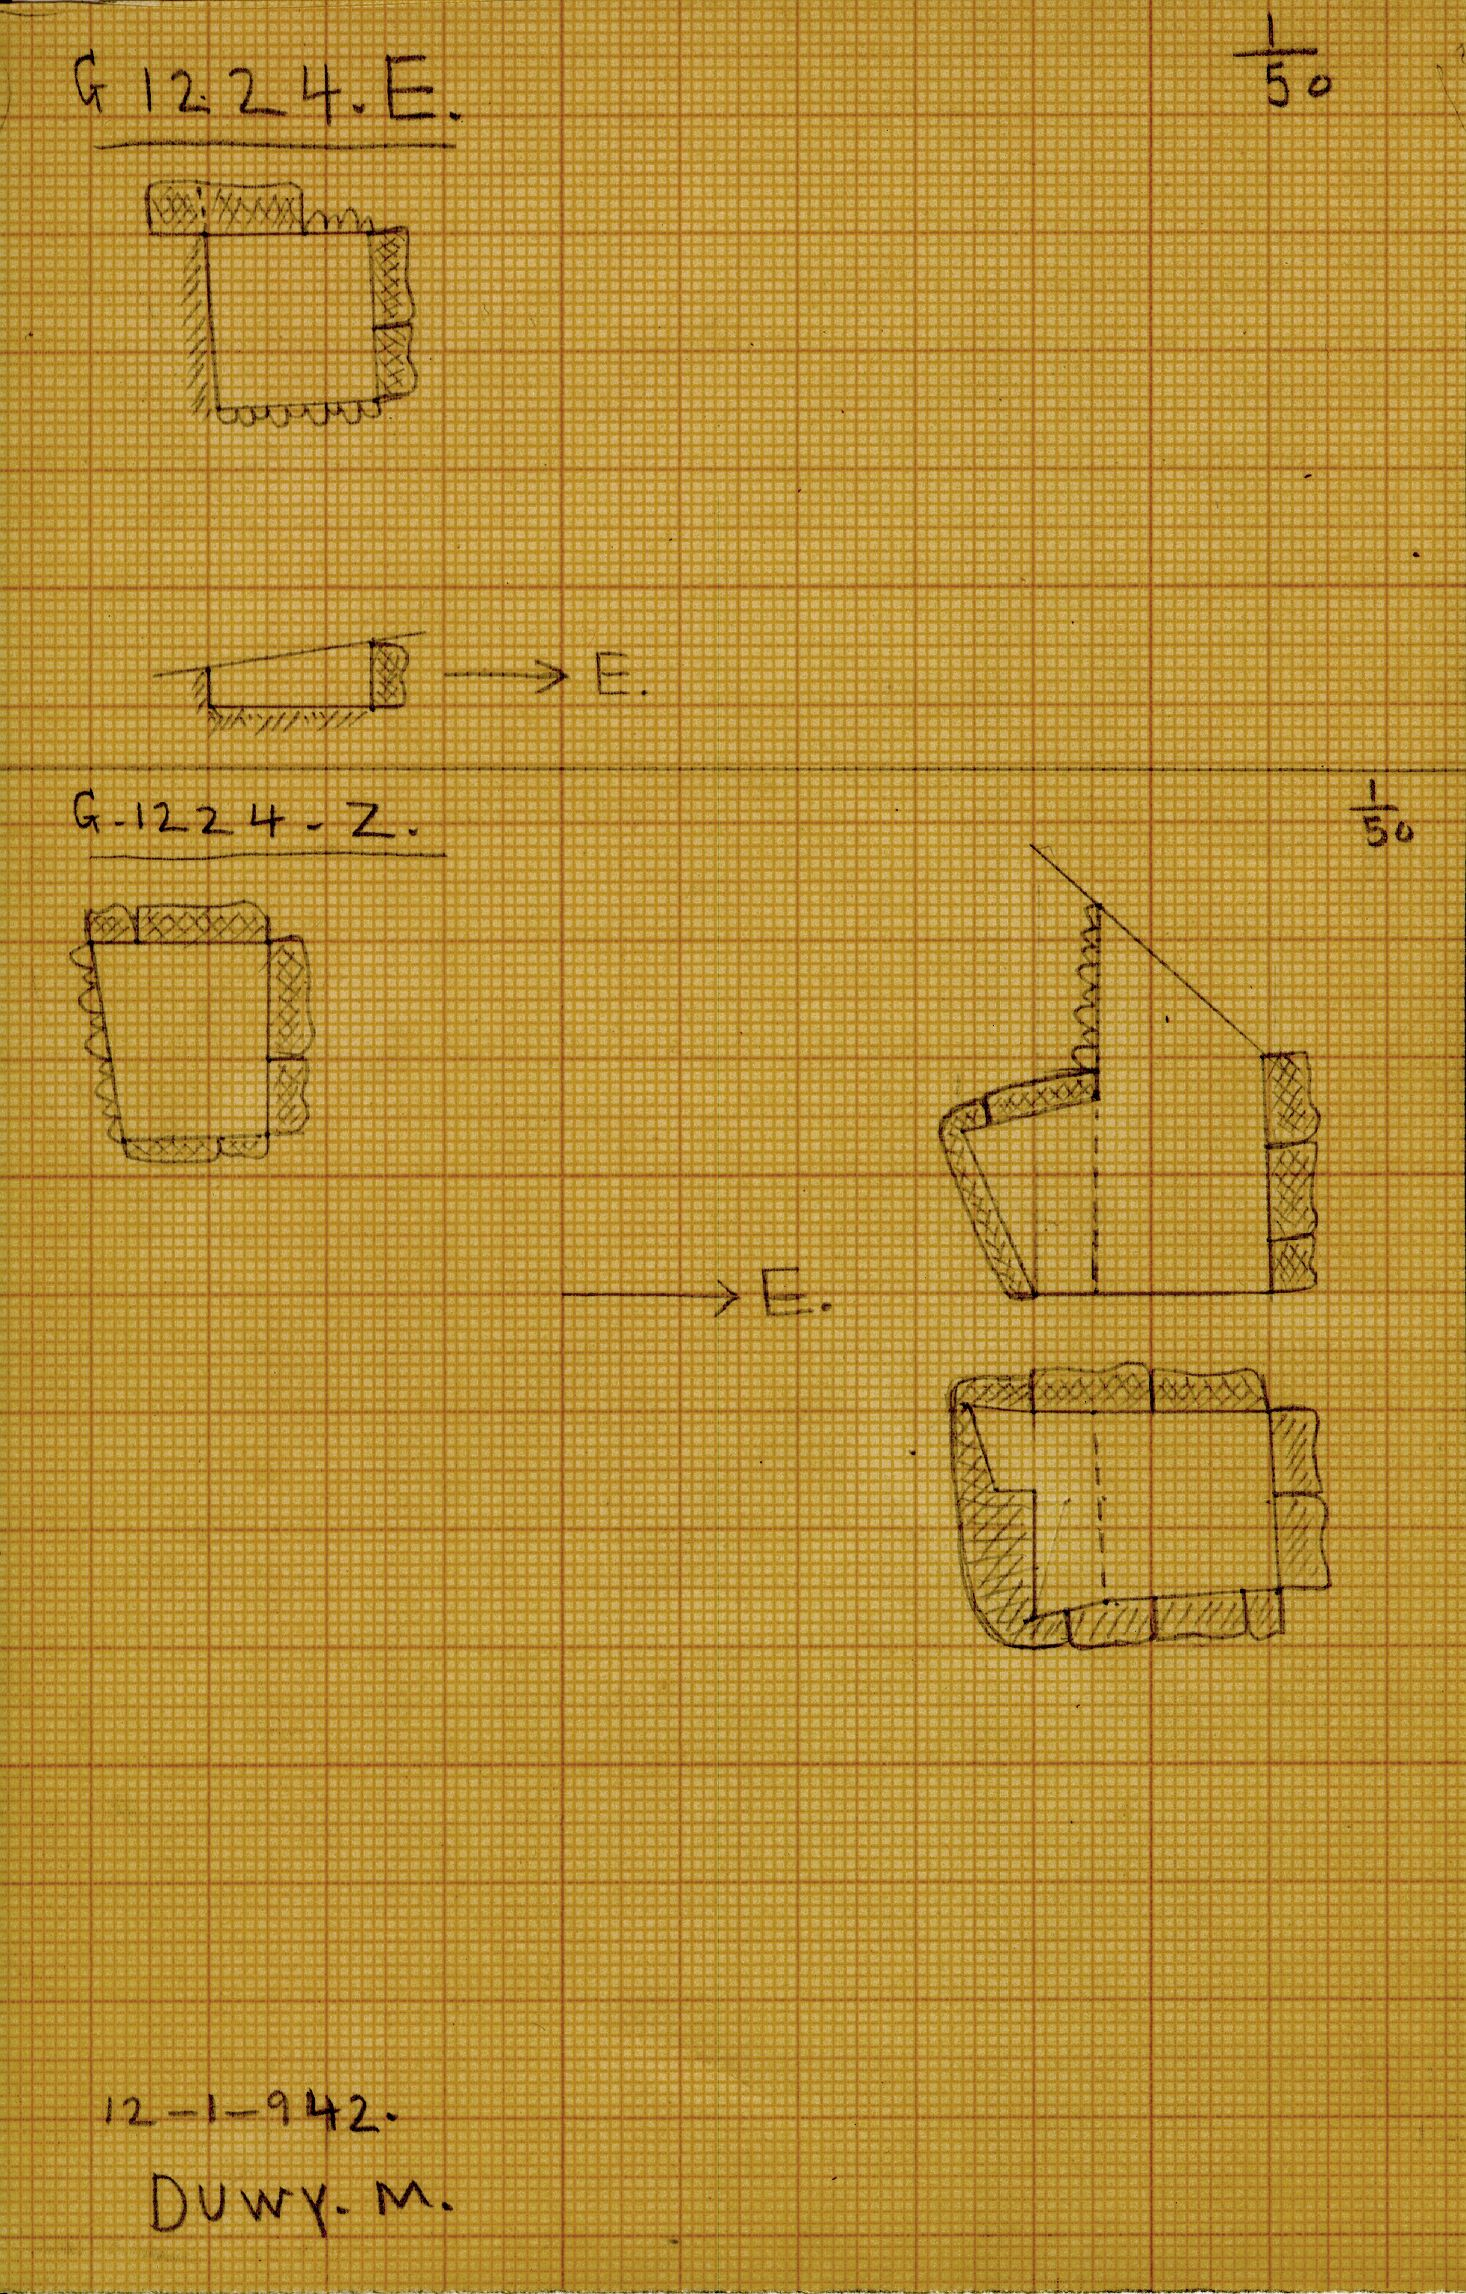 Maps and plans: G 1224+1311: G 1224, Shaft E and Z